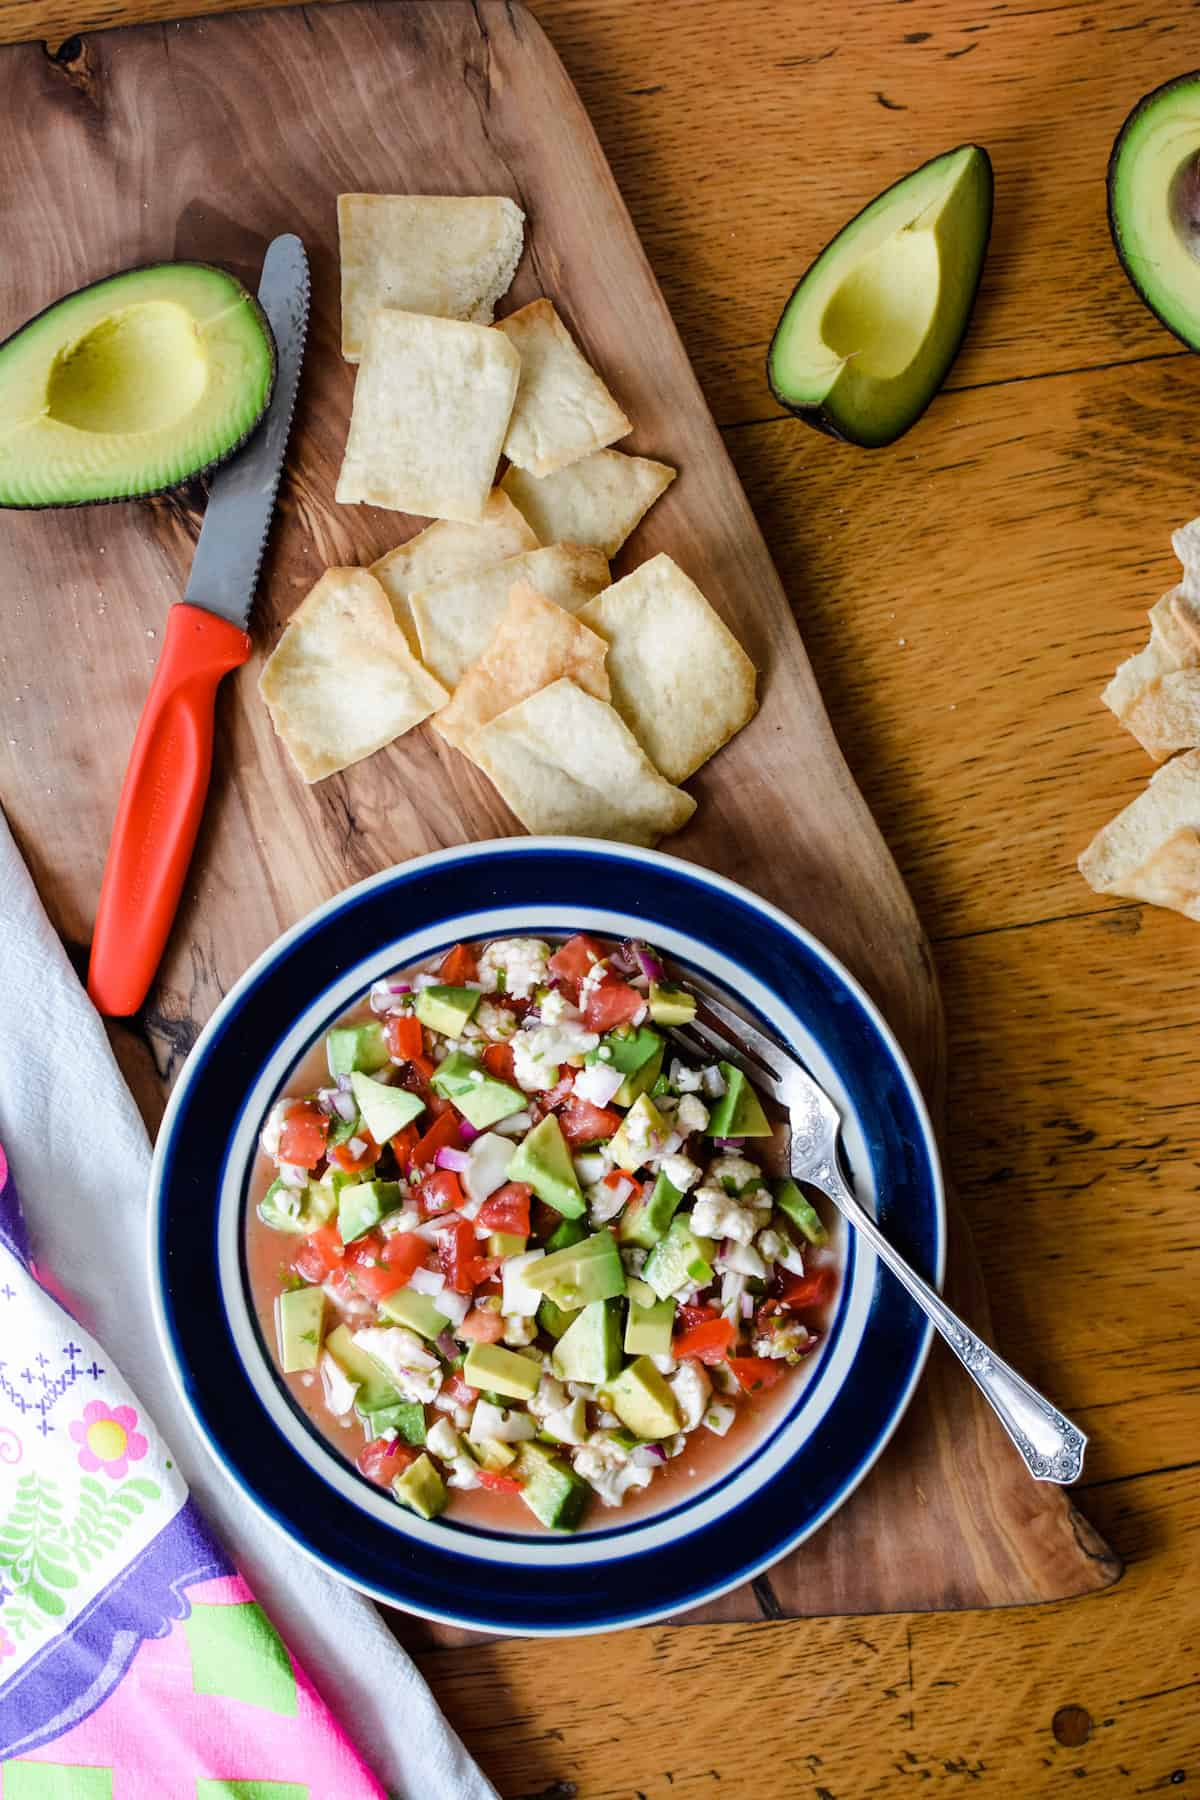 A plate of vegan ceviche with a fork in it sitting on a wooden cutting board next to pita chips.